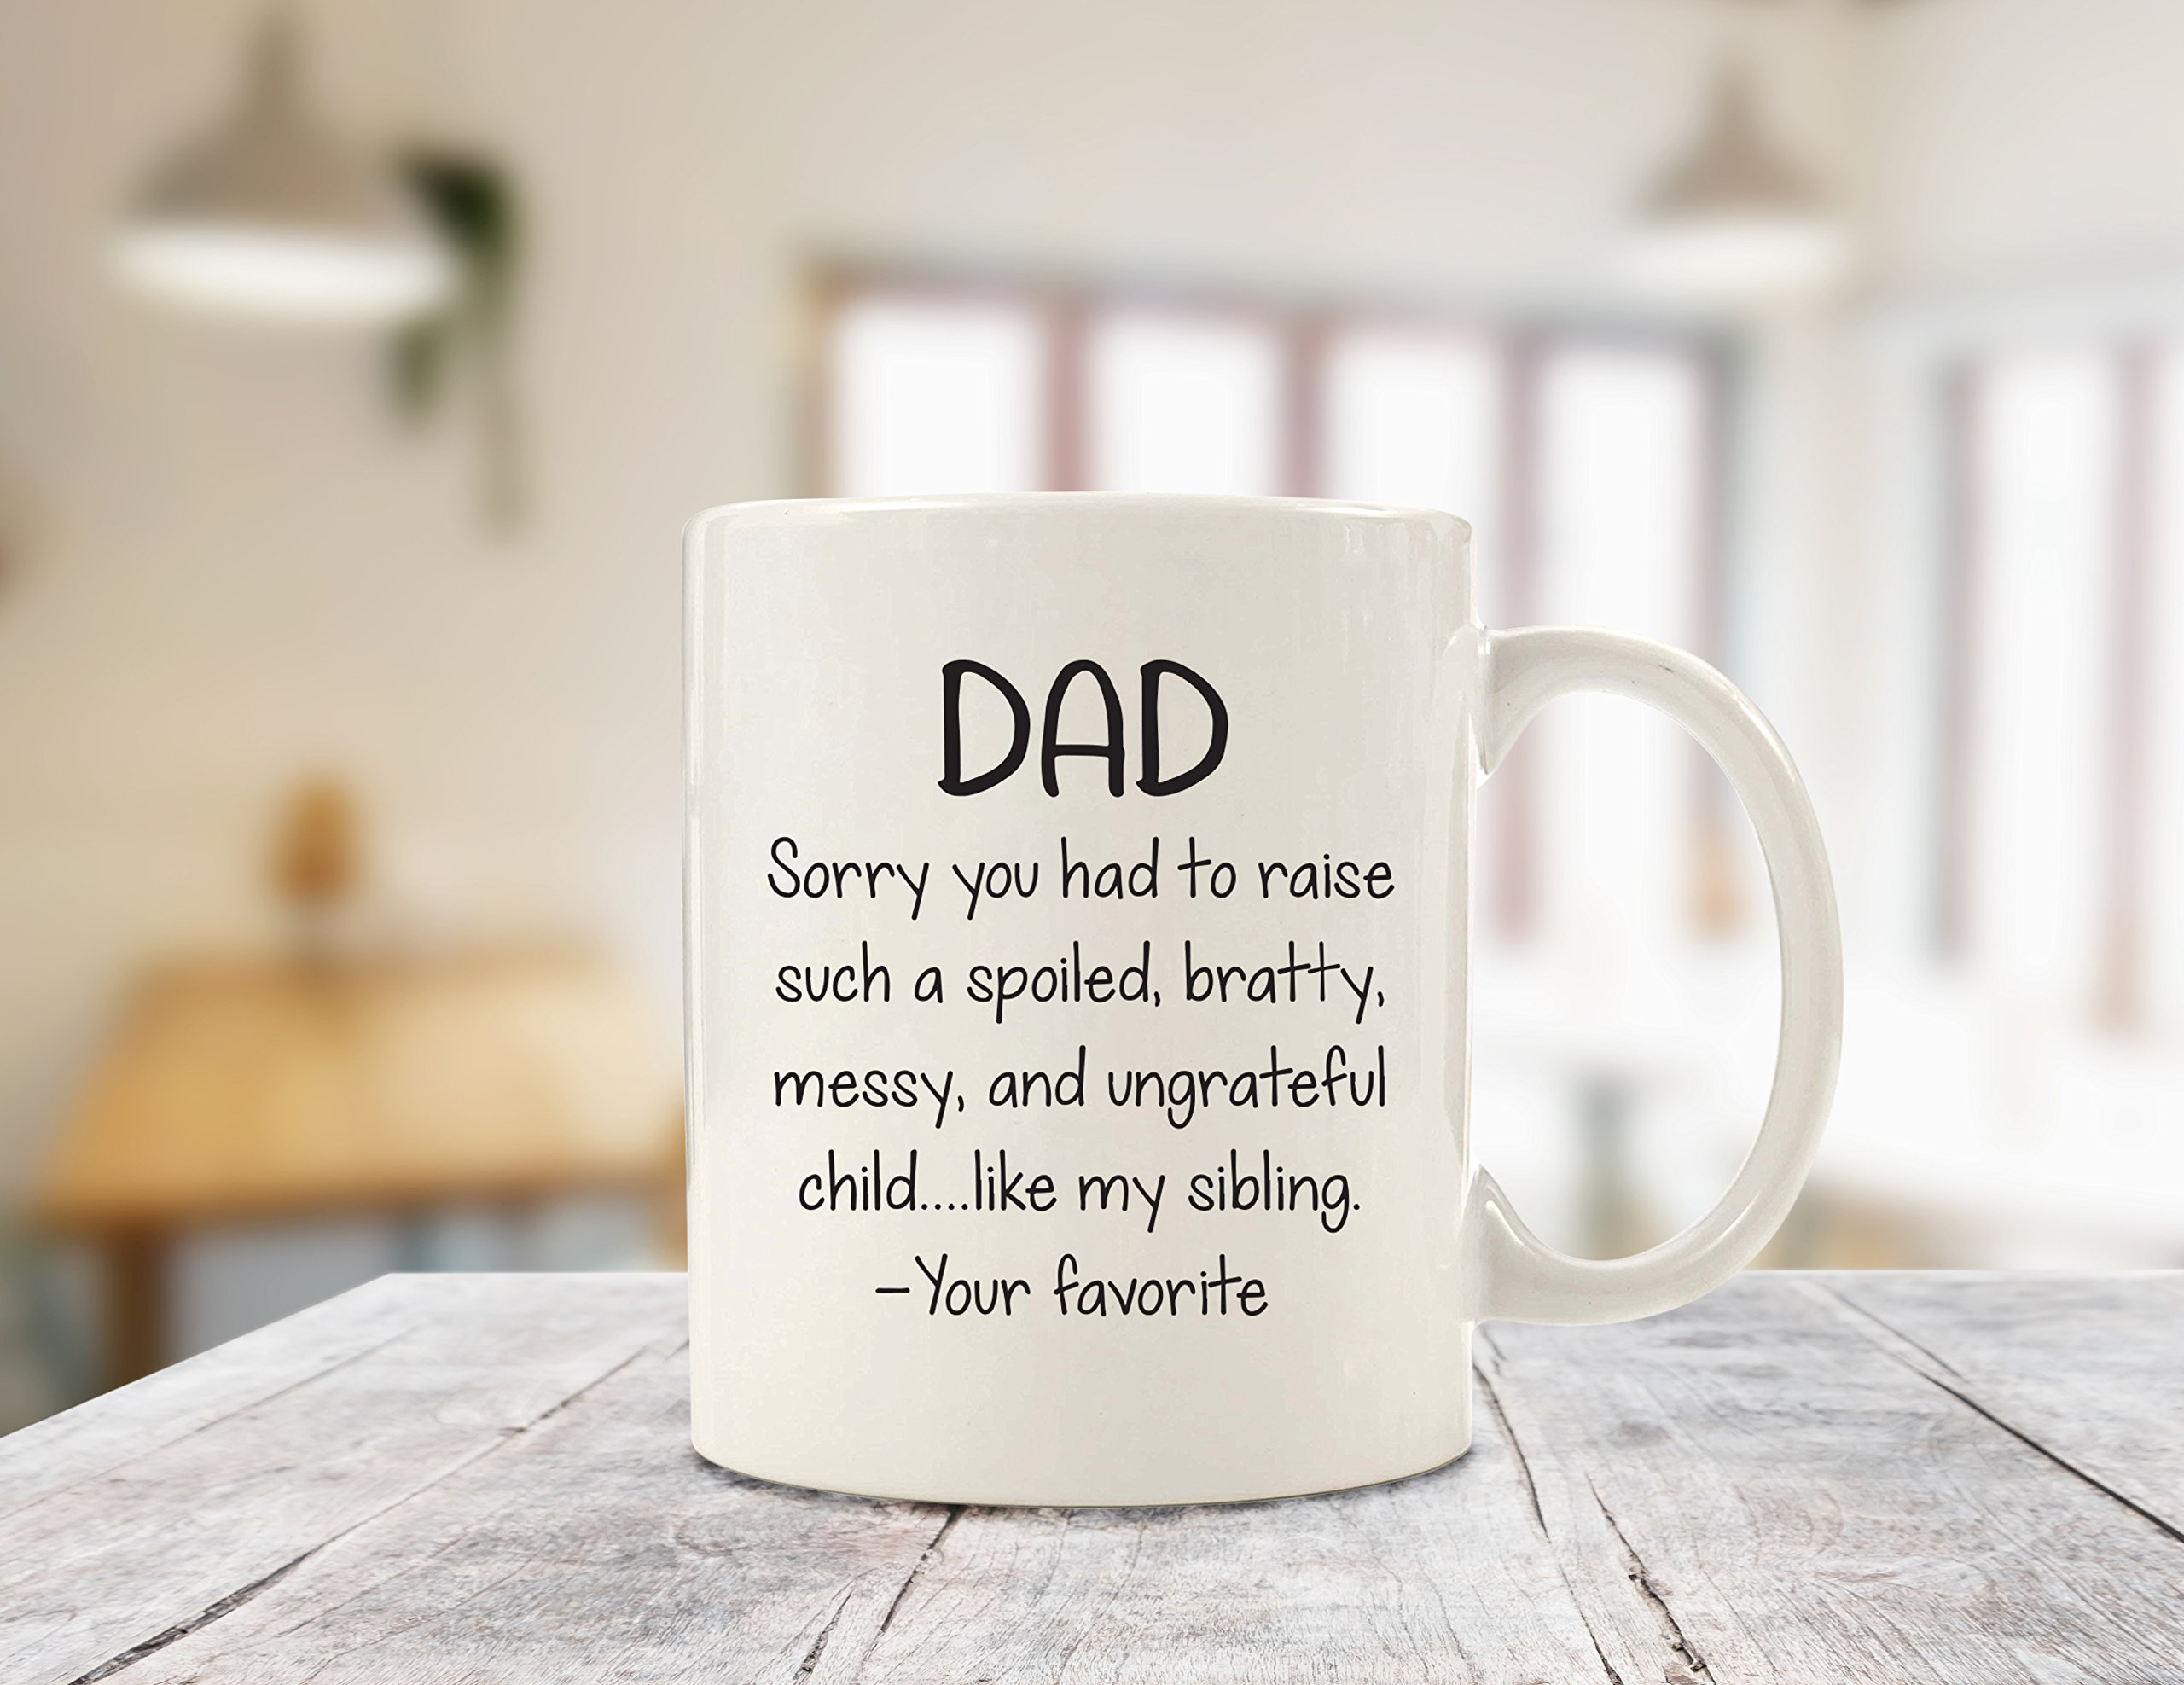 Spoiled Sibling Funny Coffee Mug - Best Dad Gifts - Unique Gag Fathers Day Gift For Him From Daughter, Son, Favorite Child - Cool Birthday Present Idea For Men, Guys, Father - Fun Novelty Cup - 11 oz by Wittsy Glassware and Gifts (Image #3)